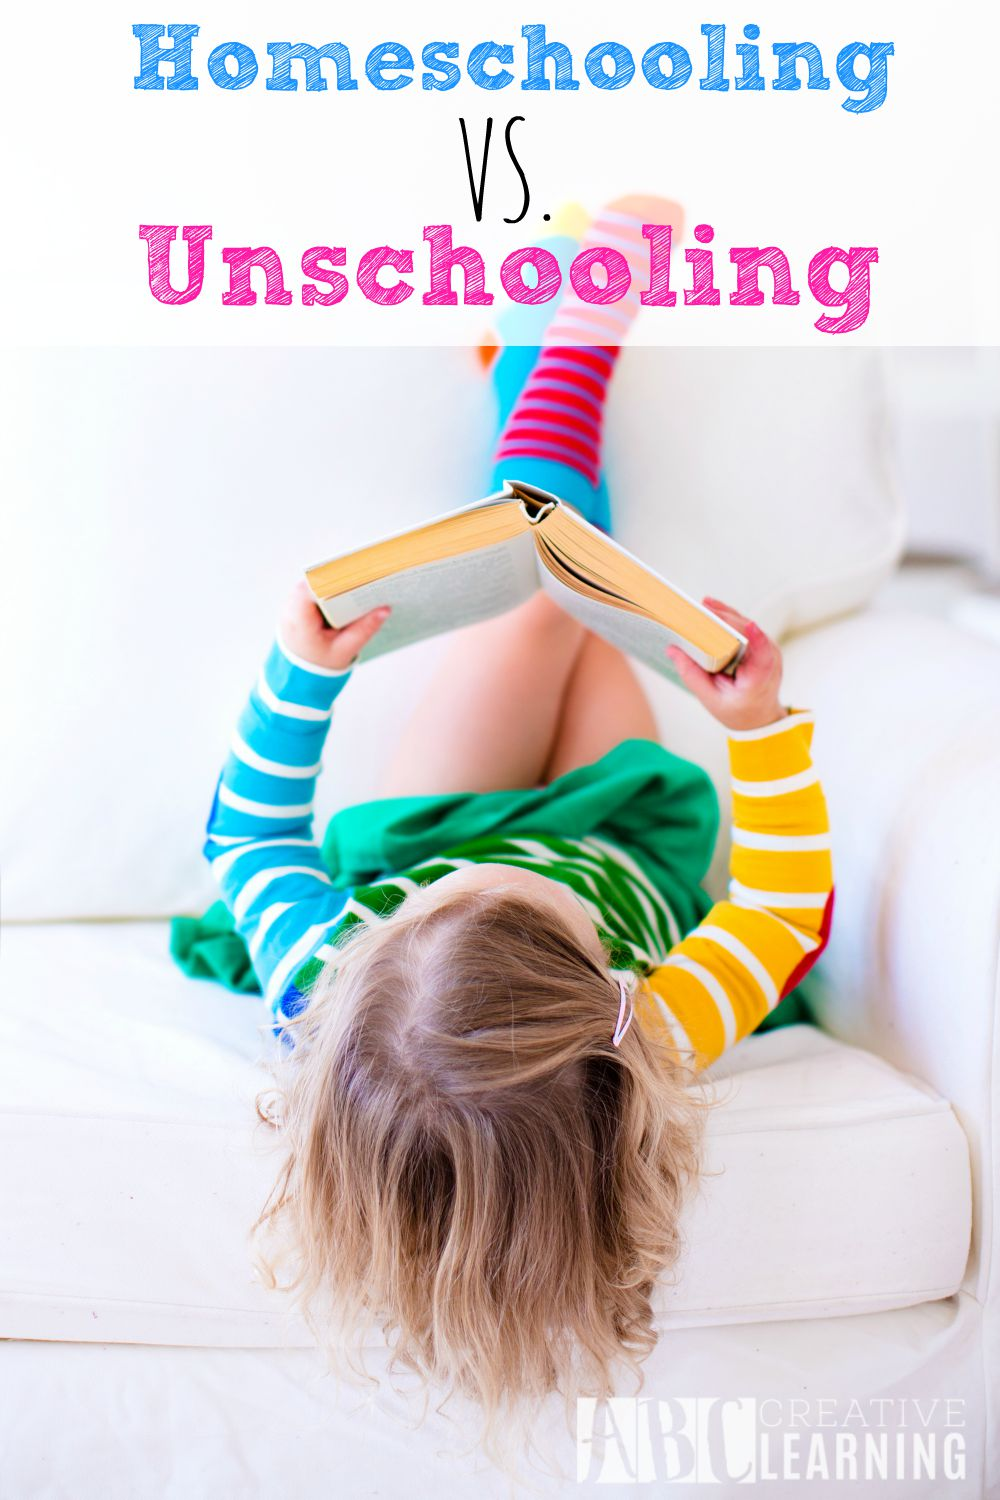 Homeschooling vs. Unschooling – What Is Best For Your Child?